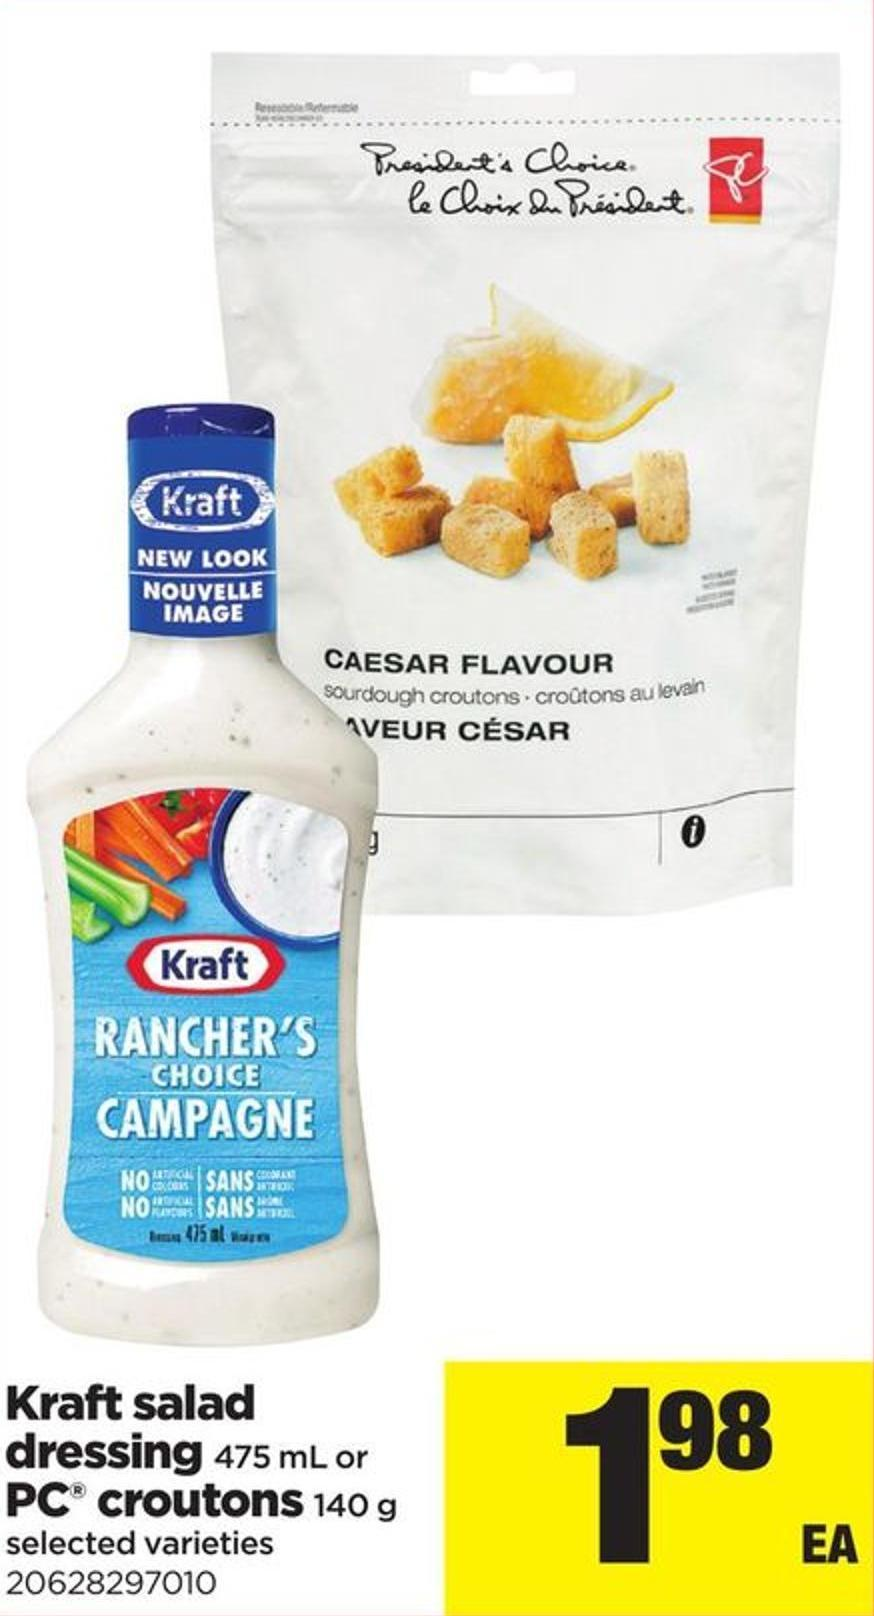 Kraft Salad Dressing - 475 Ml Or PC Croutons - 140 G